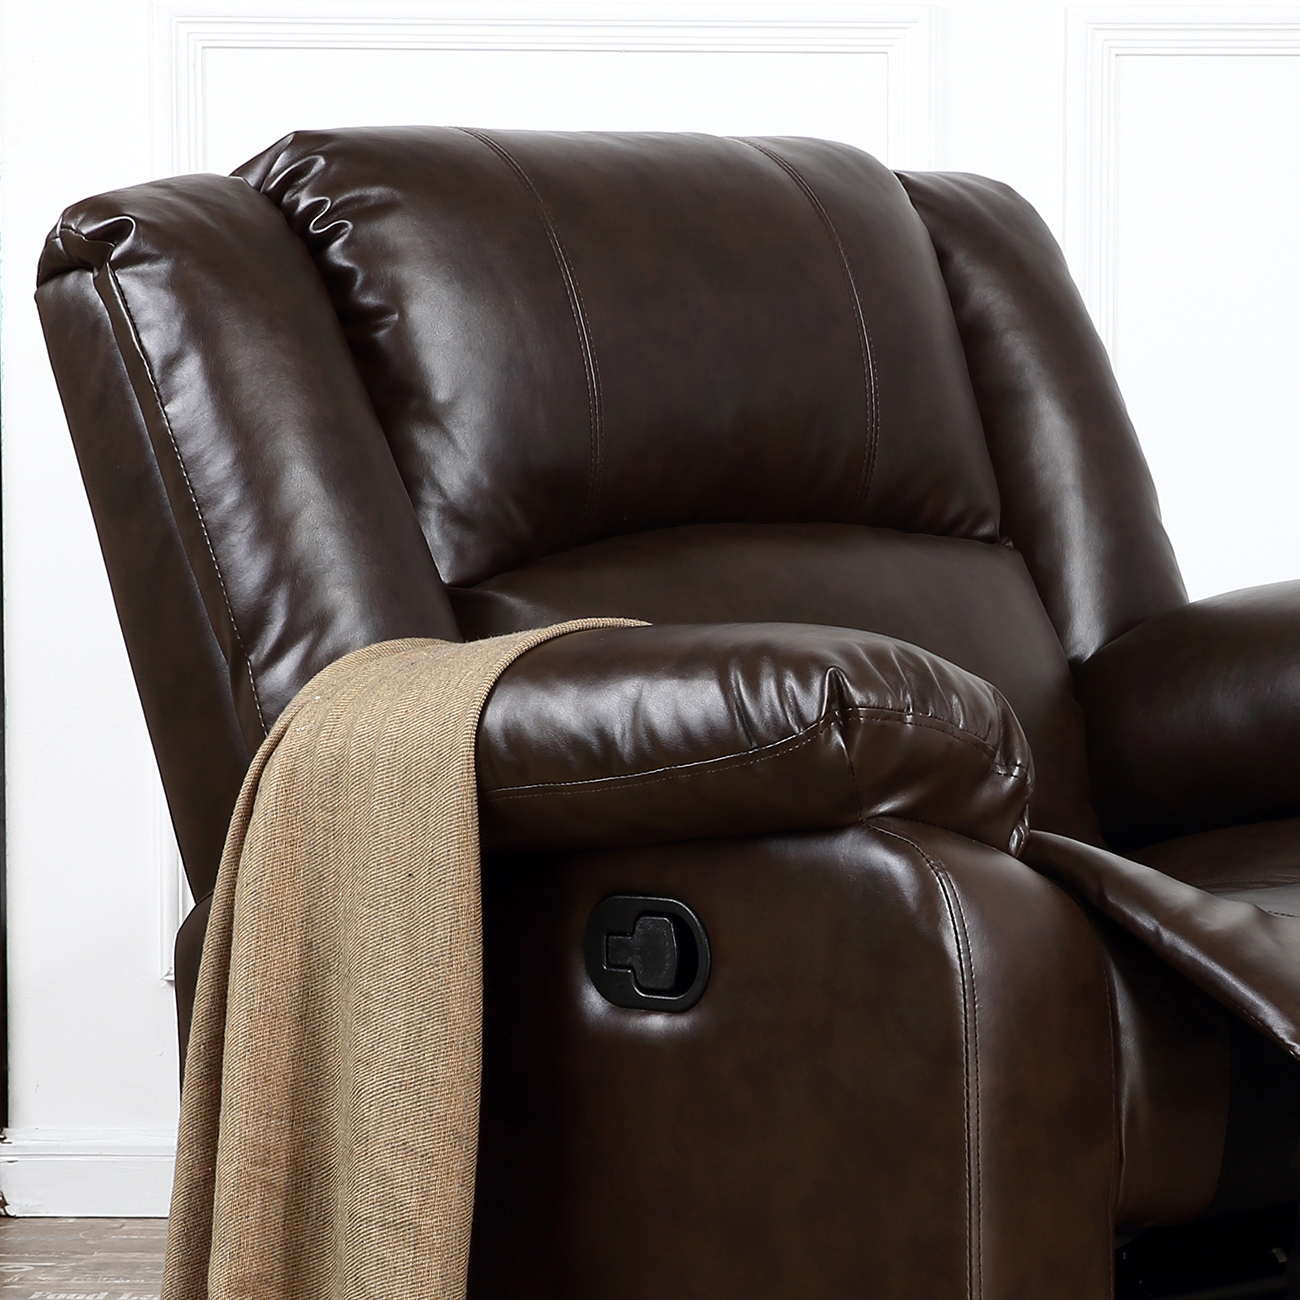 Black Living Room Chair Recliner Chairs For Living Room Dark Brown Black Leather